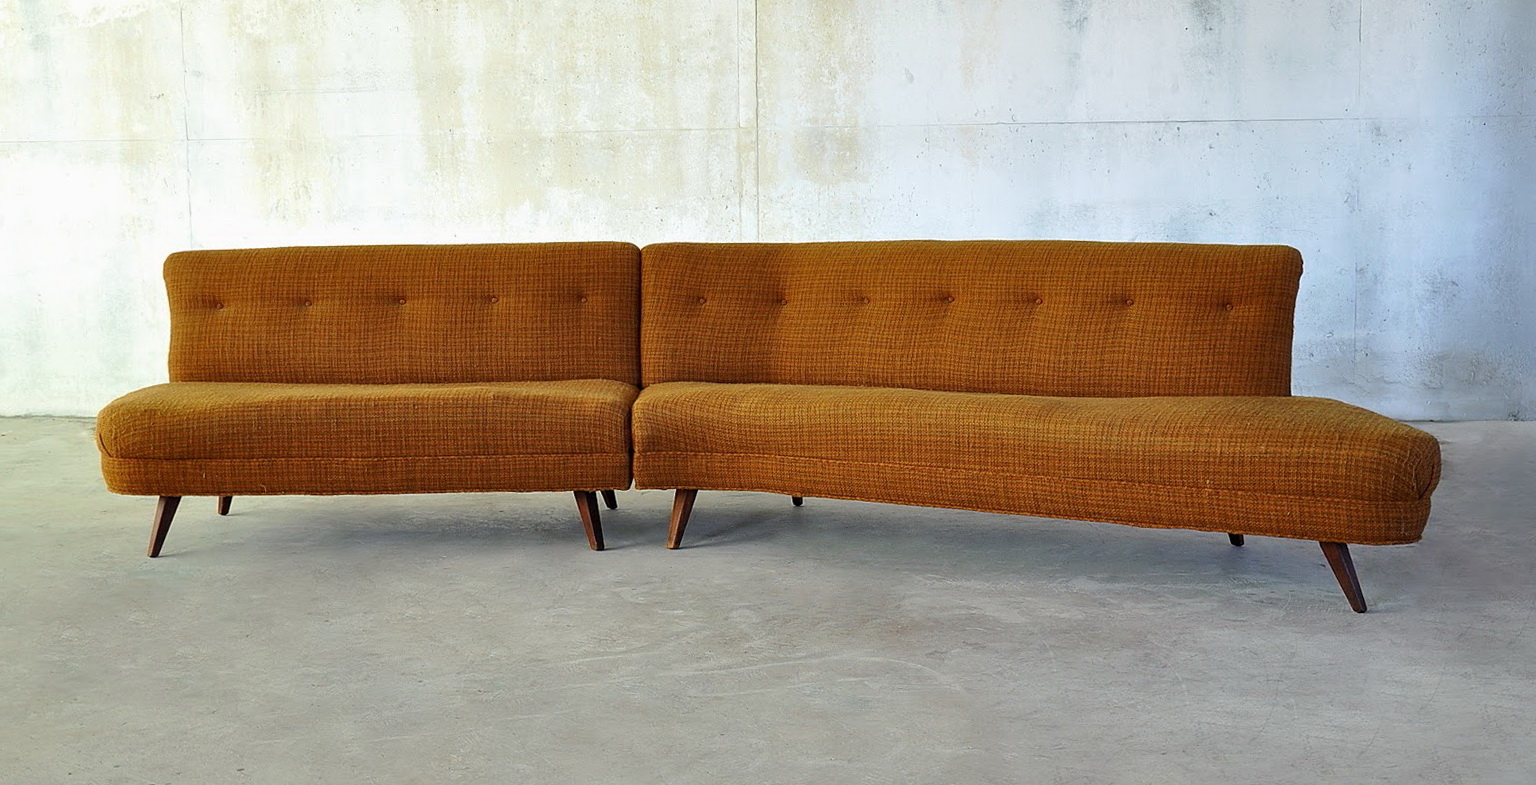 Sleeper sofa sleeping couches for sale archive 2 for Mid century modern sofa for sale